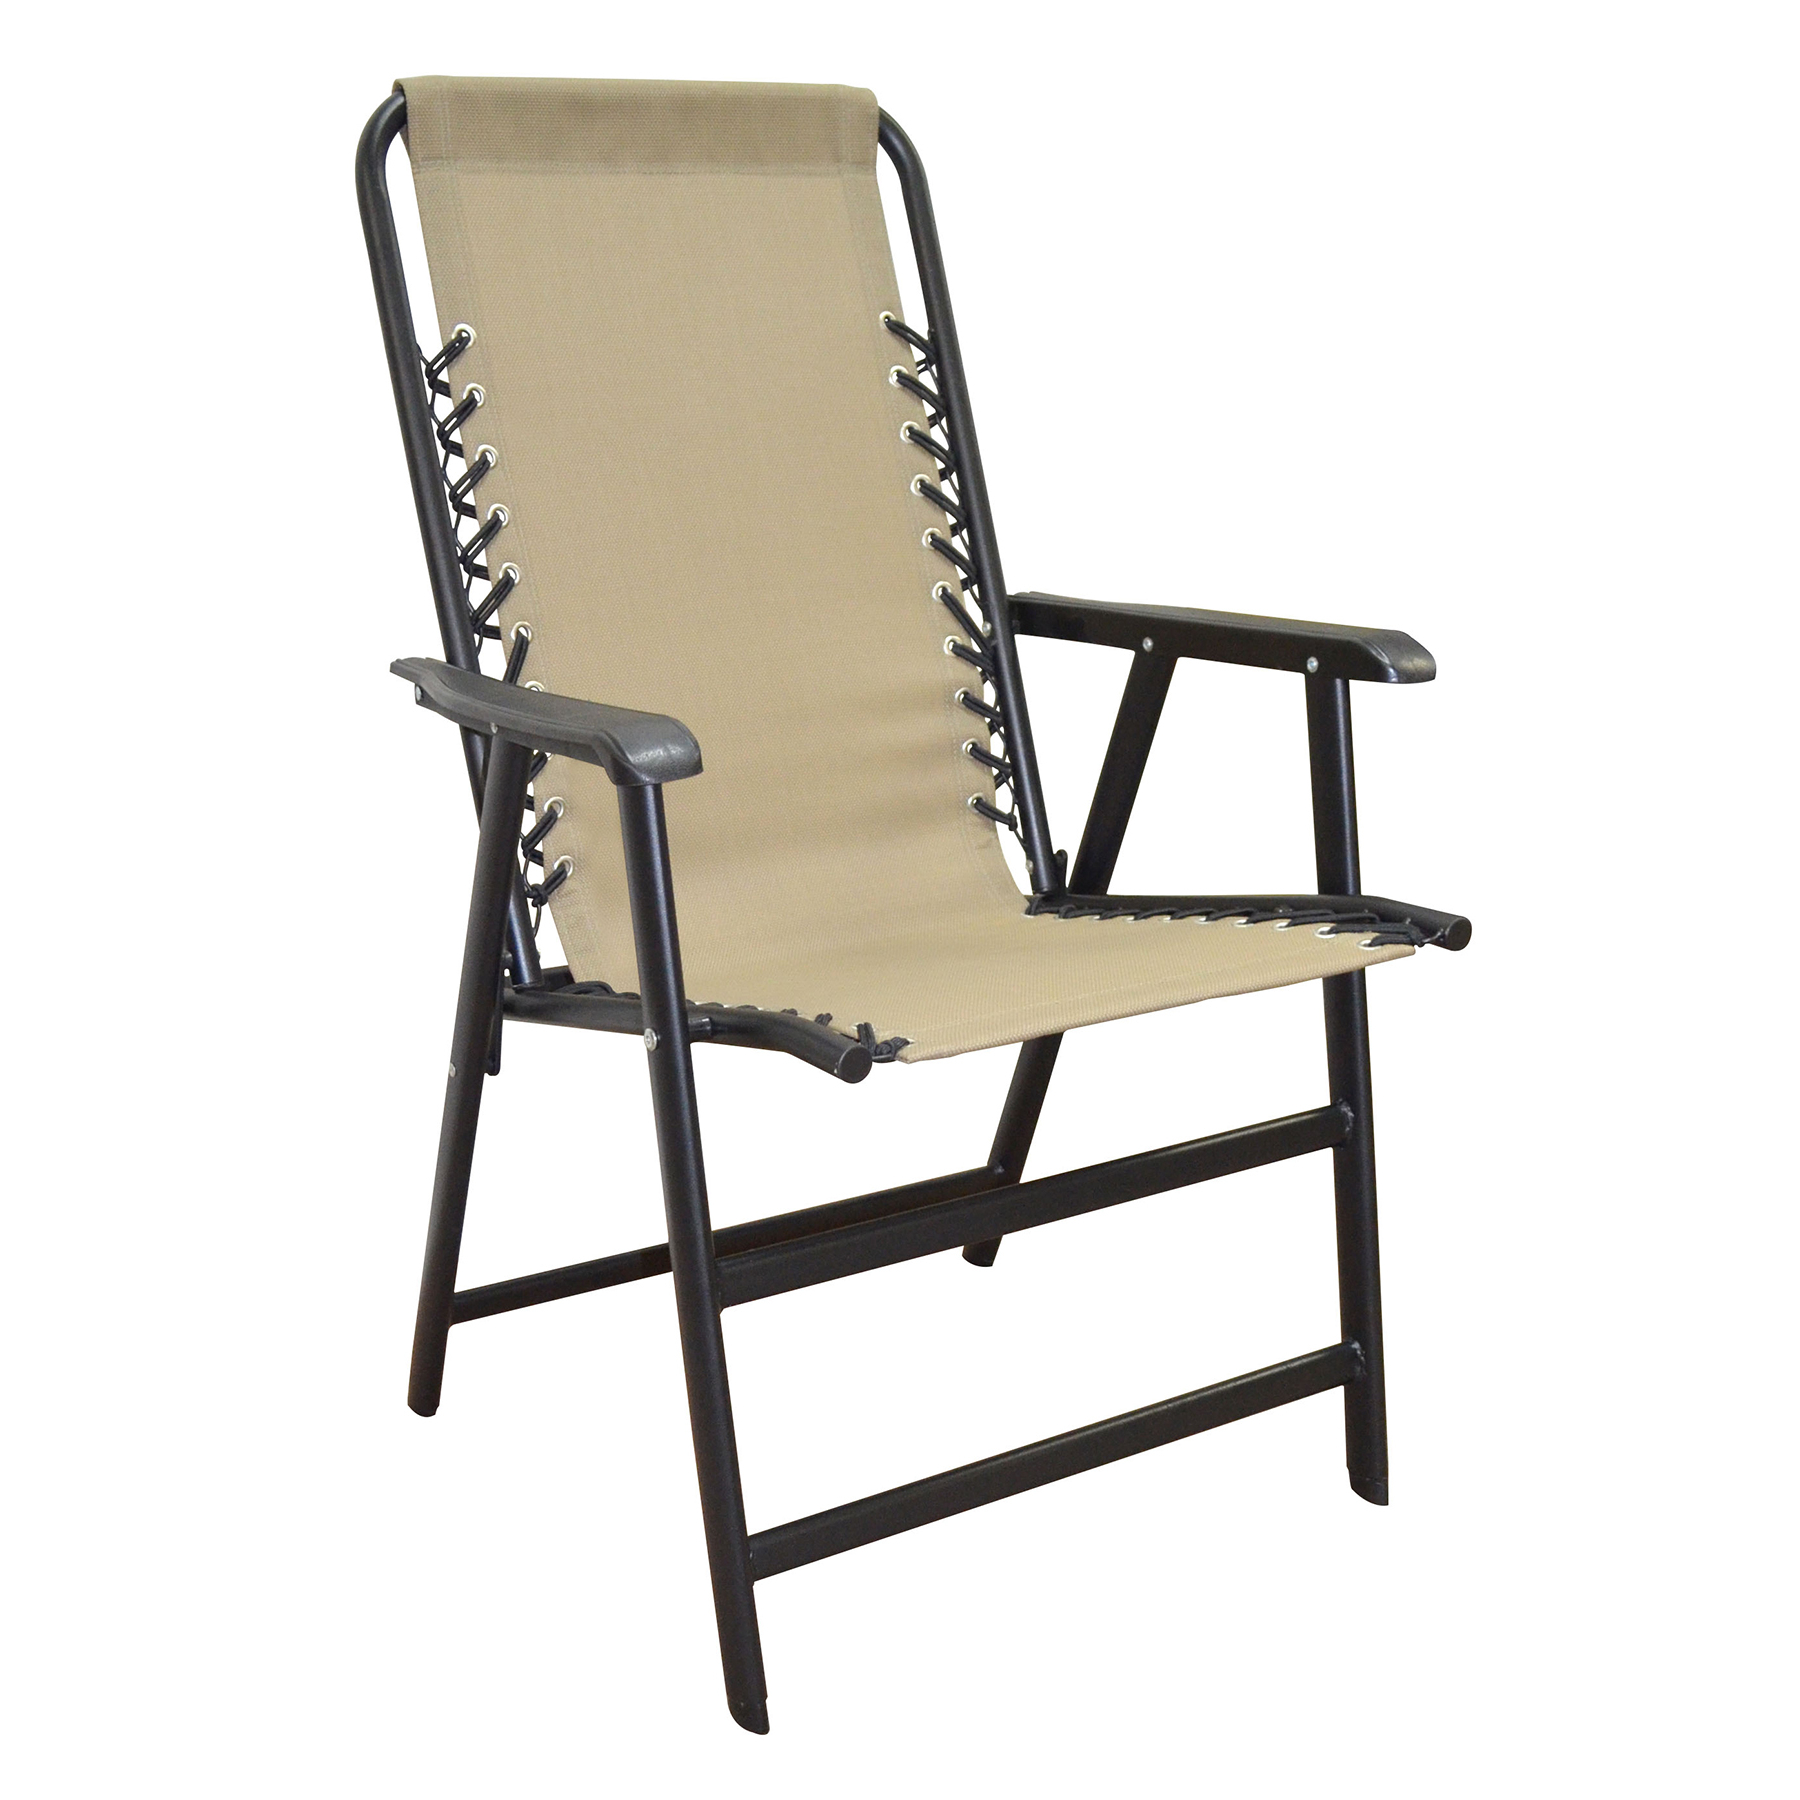 "Caravan Canopy Sports 80012000150 37.4"" Suspension Beige Folding Chair"